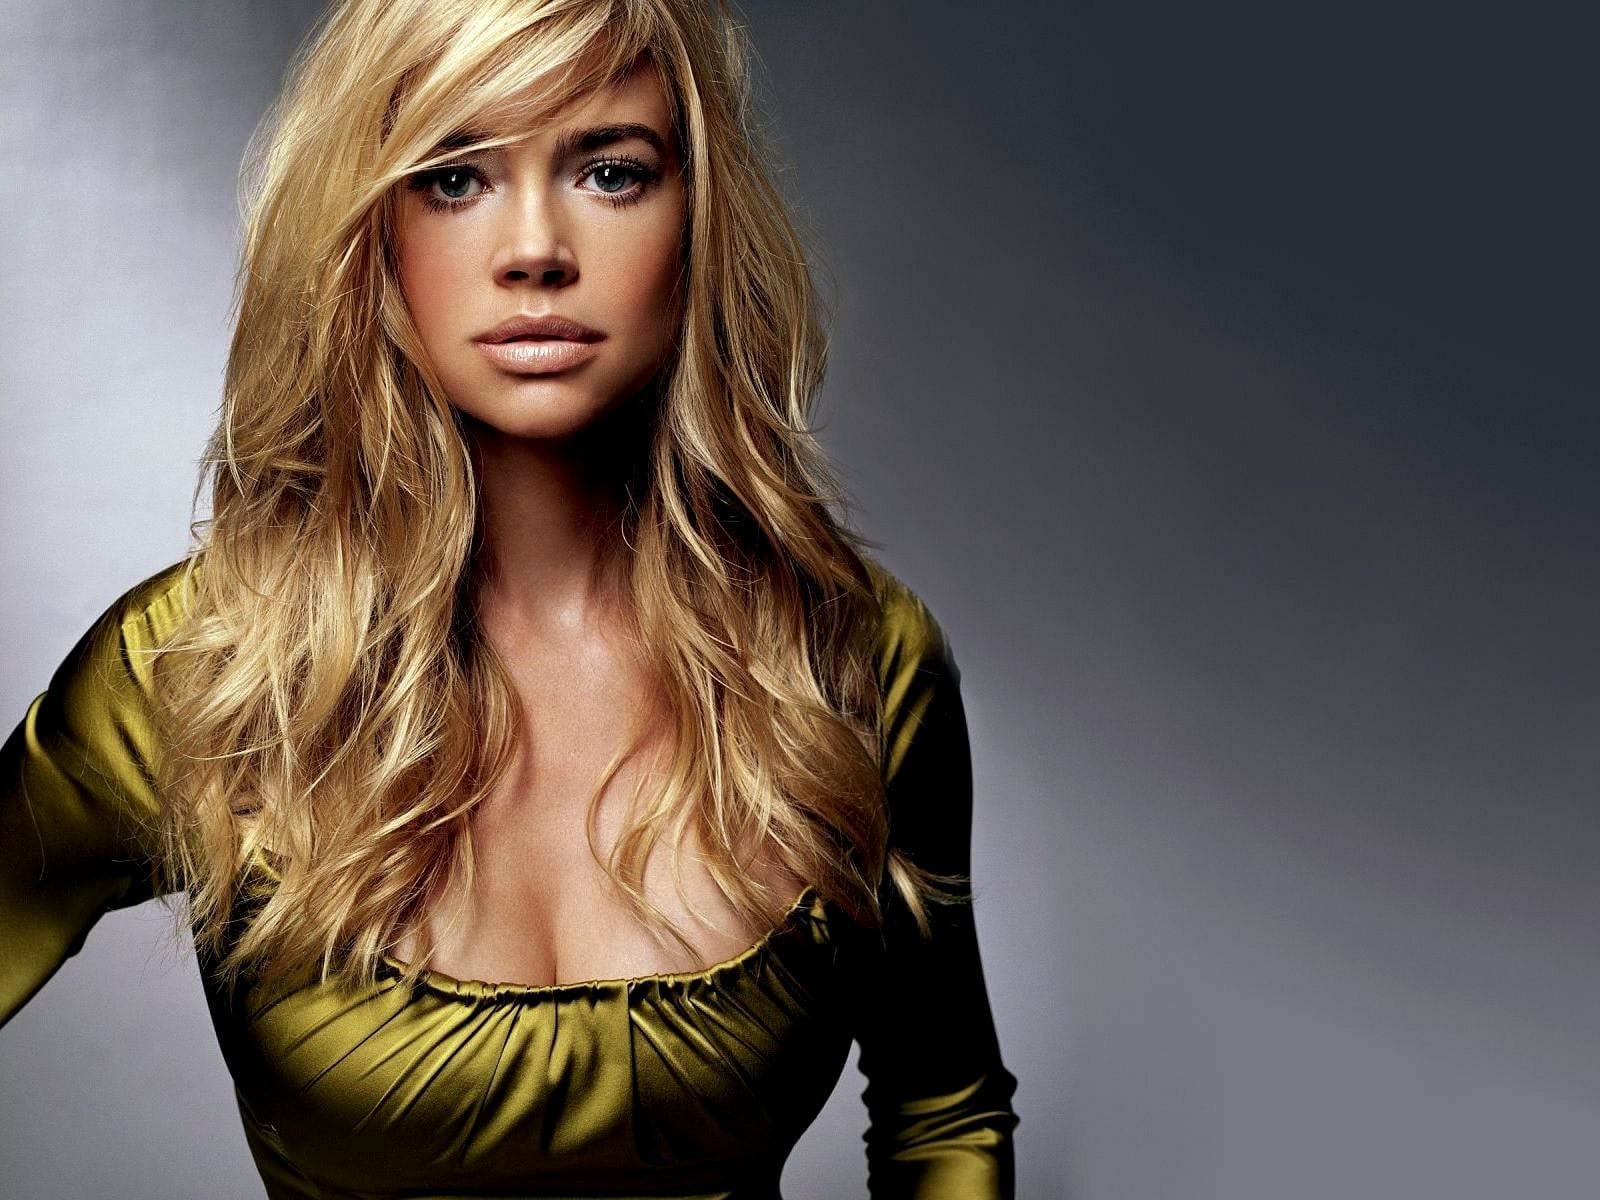 Denise Richards Wallpapers hd